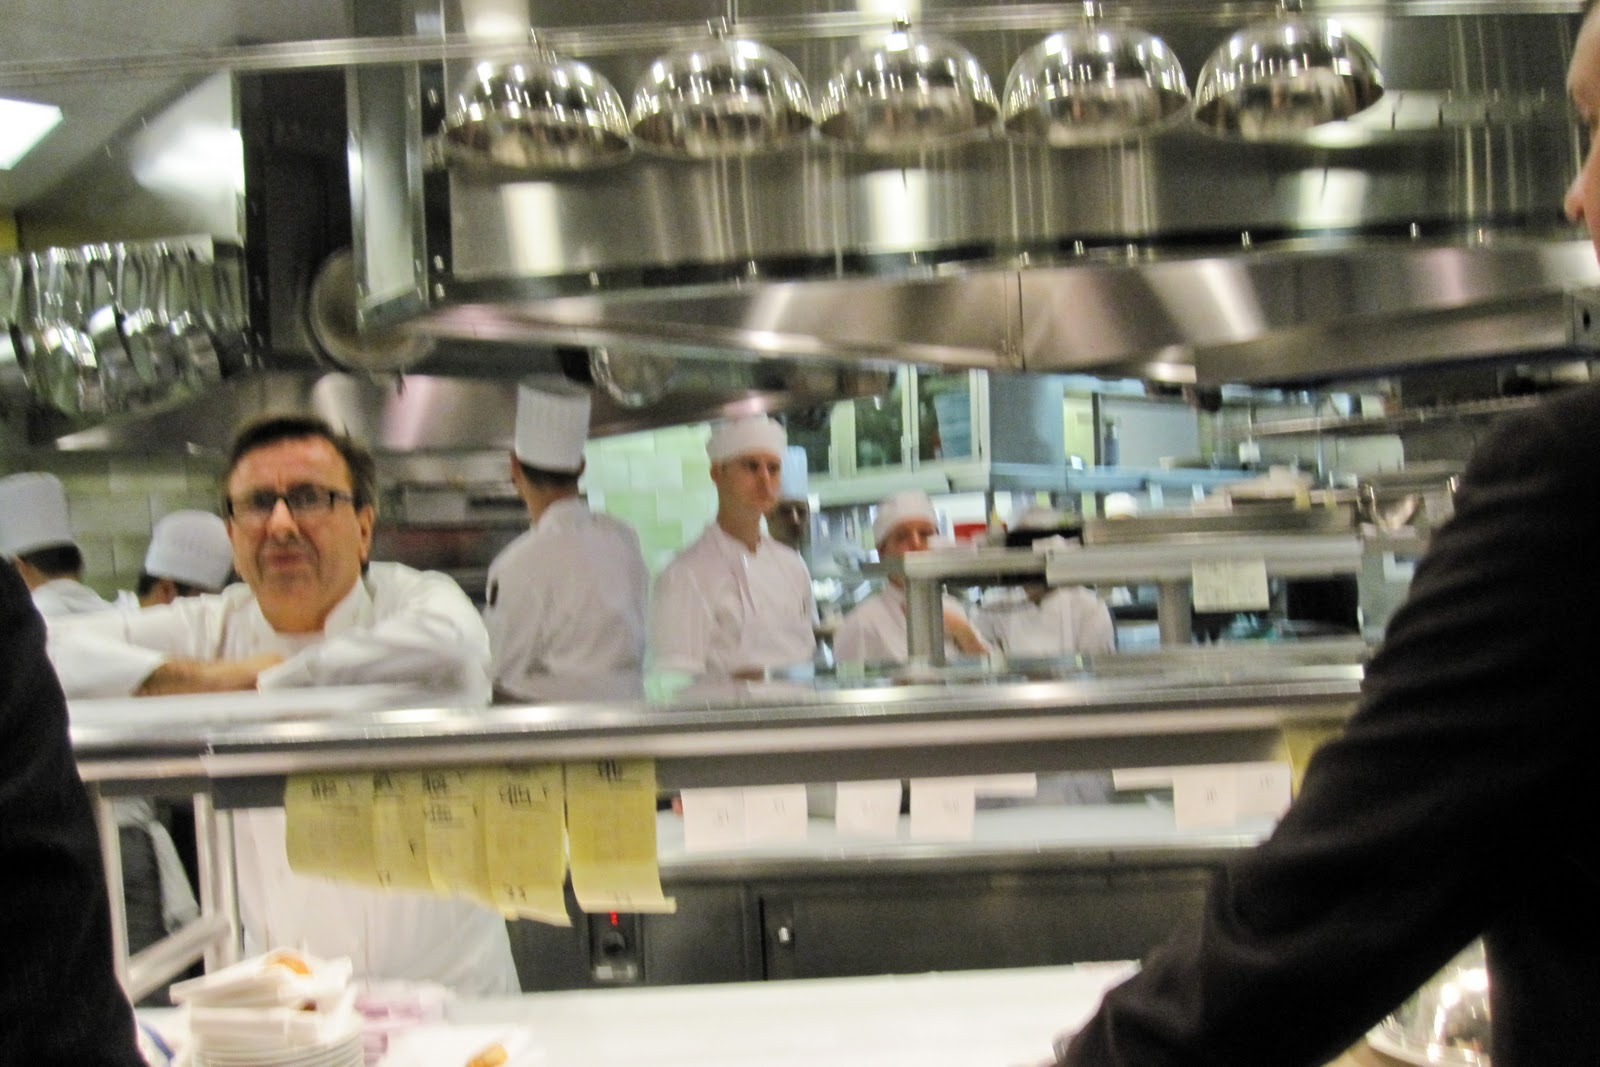 Attirant Daniel Invited Us For A Kitchen Tour. While Daniel Boulud Was Very Busy In  The